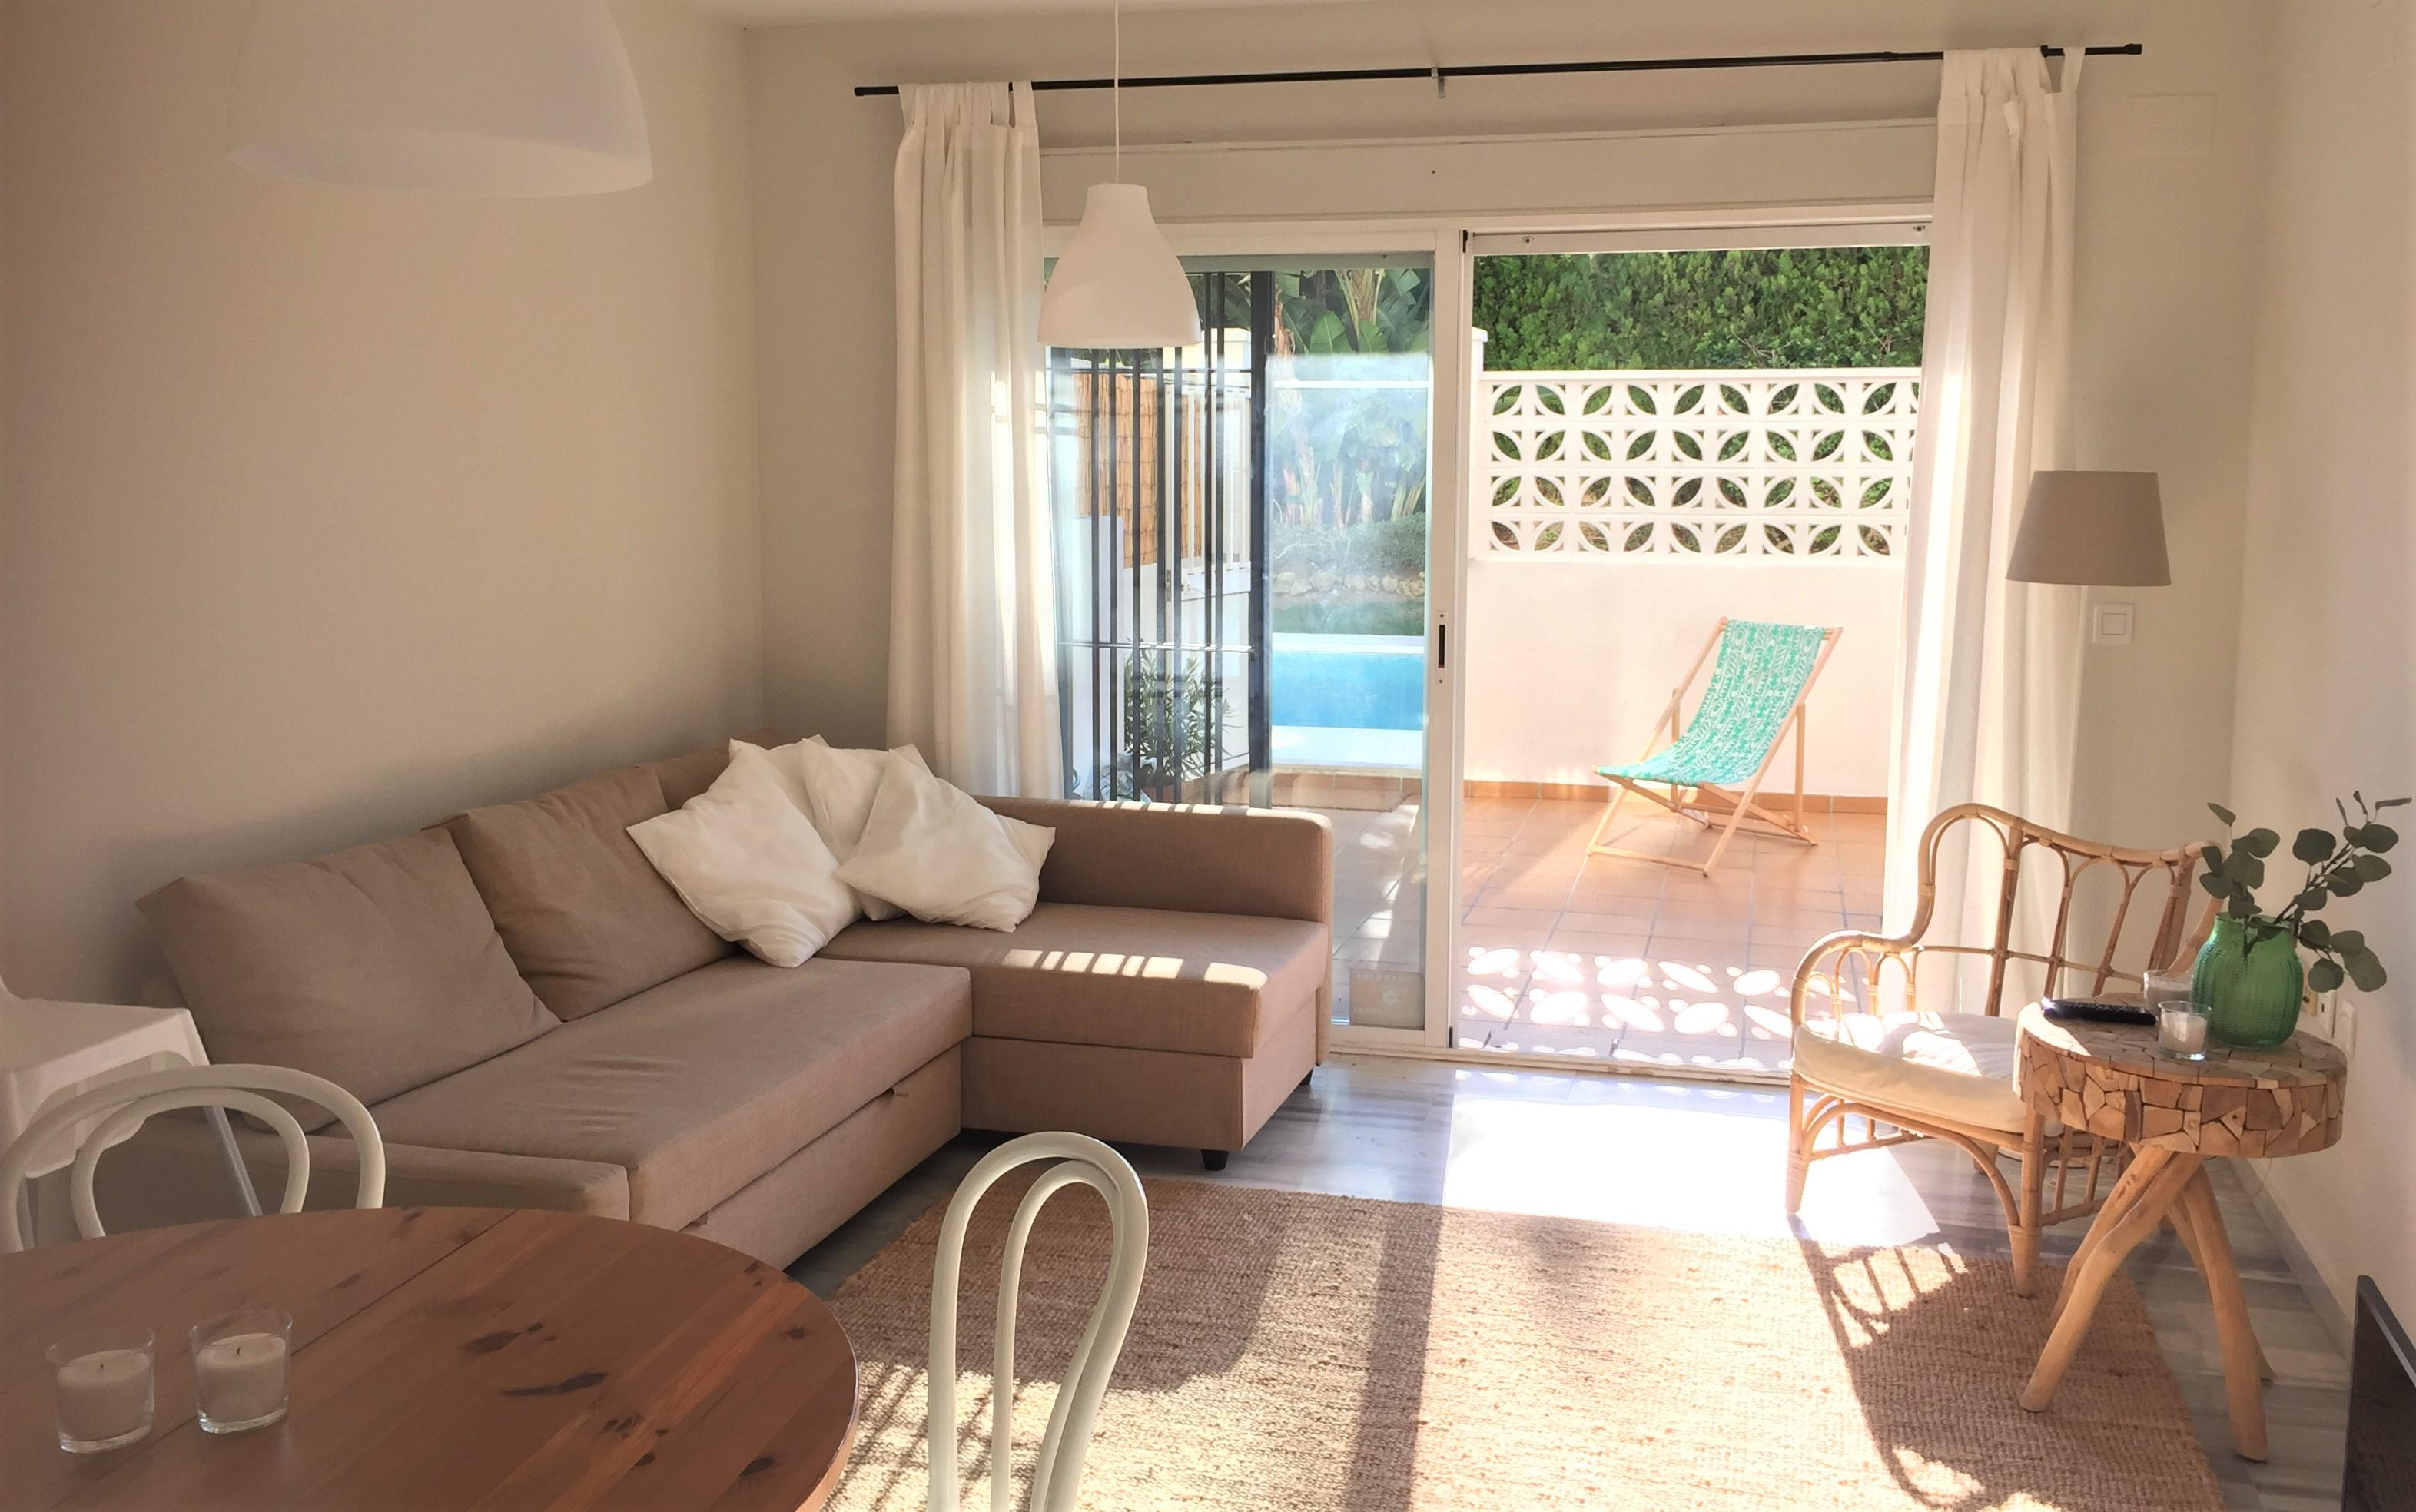 NELSON H, Apartment available for Holiday Rental in El Rosario, Marbella, Spain